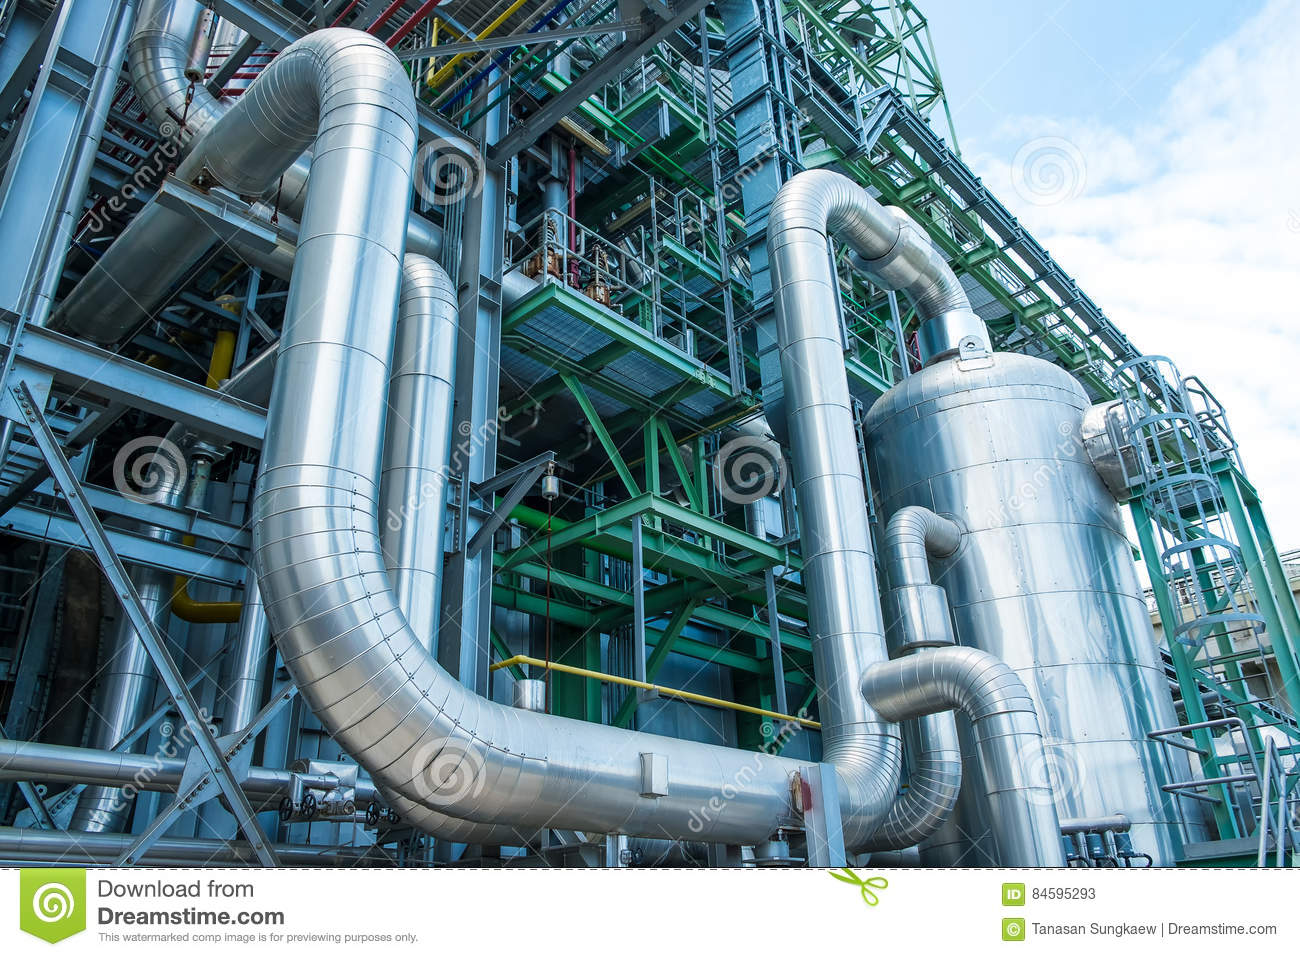 Steam Piping With Thermal Insulation Stock Image - Image of refinery ...